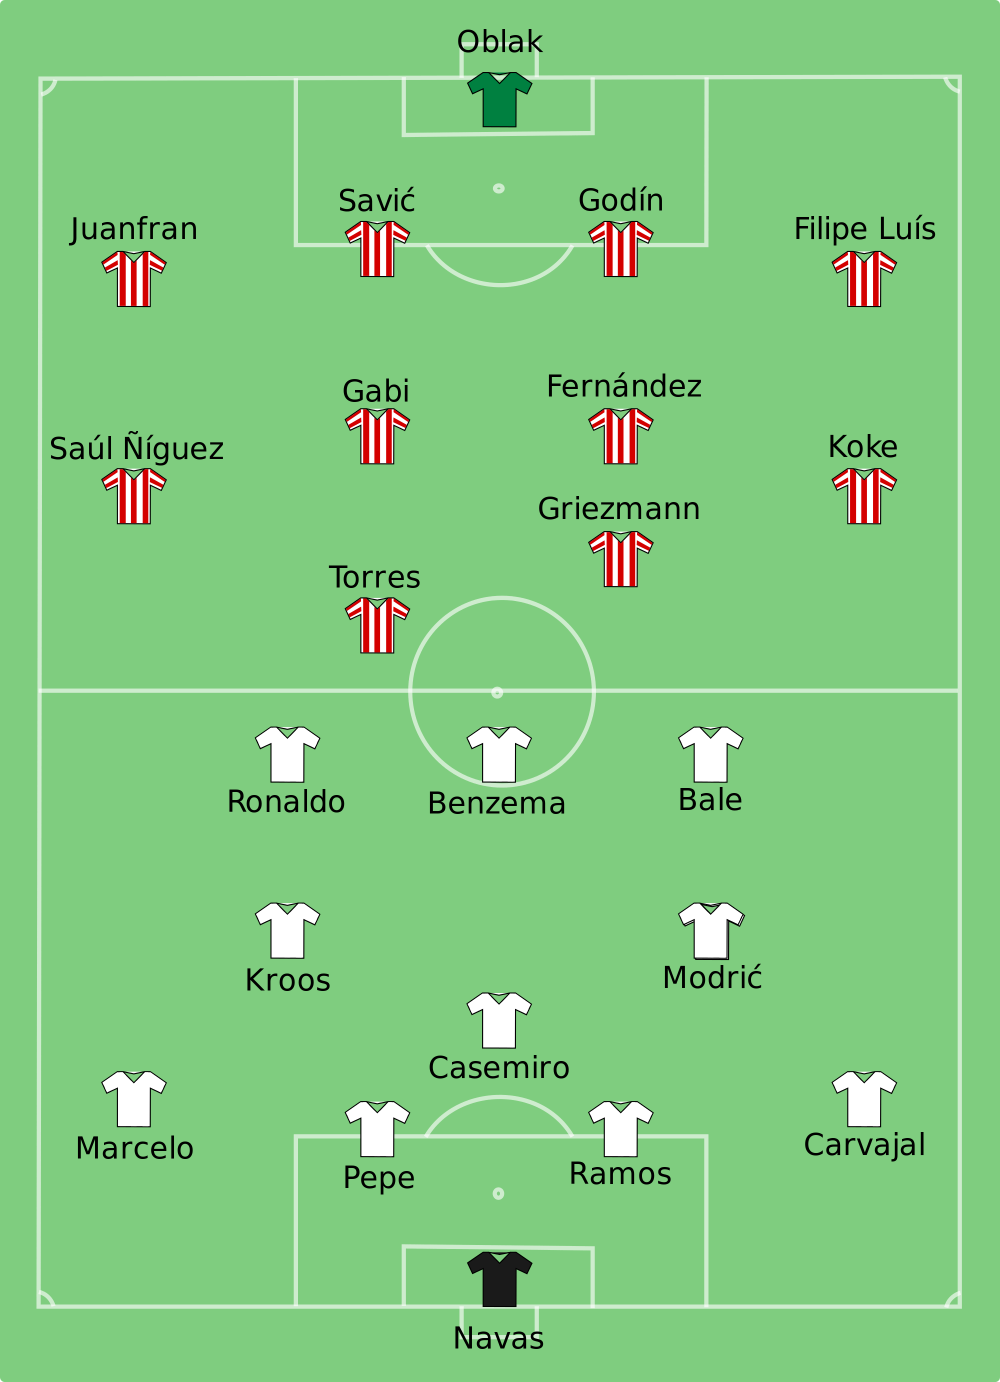 Real_Madrid_vs_Atlético_Madrid_2016-05-28.png